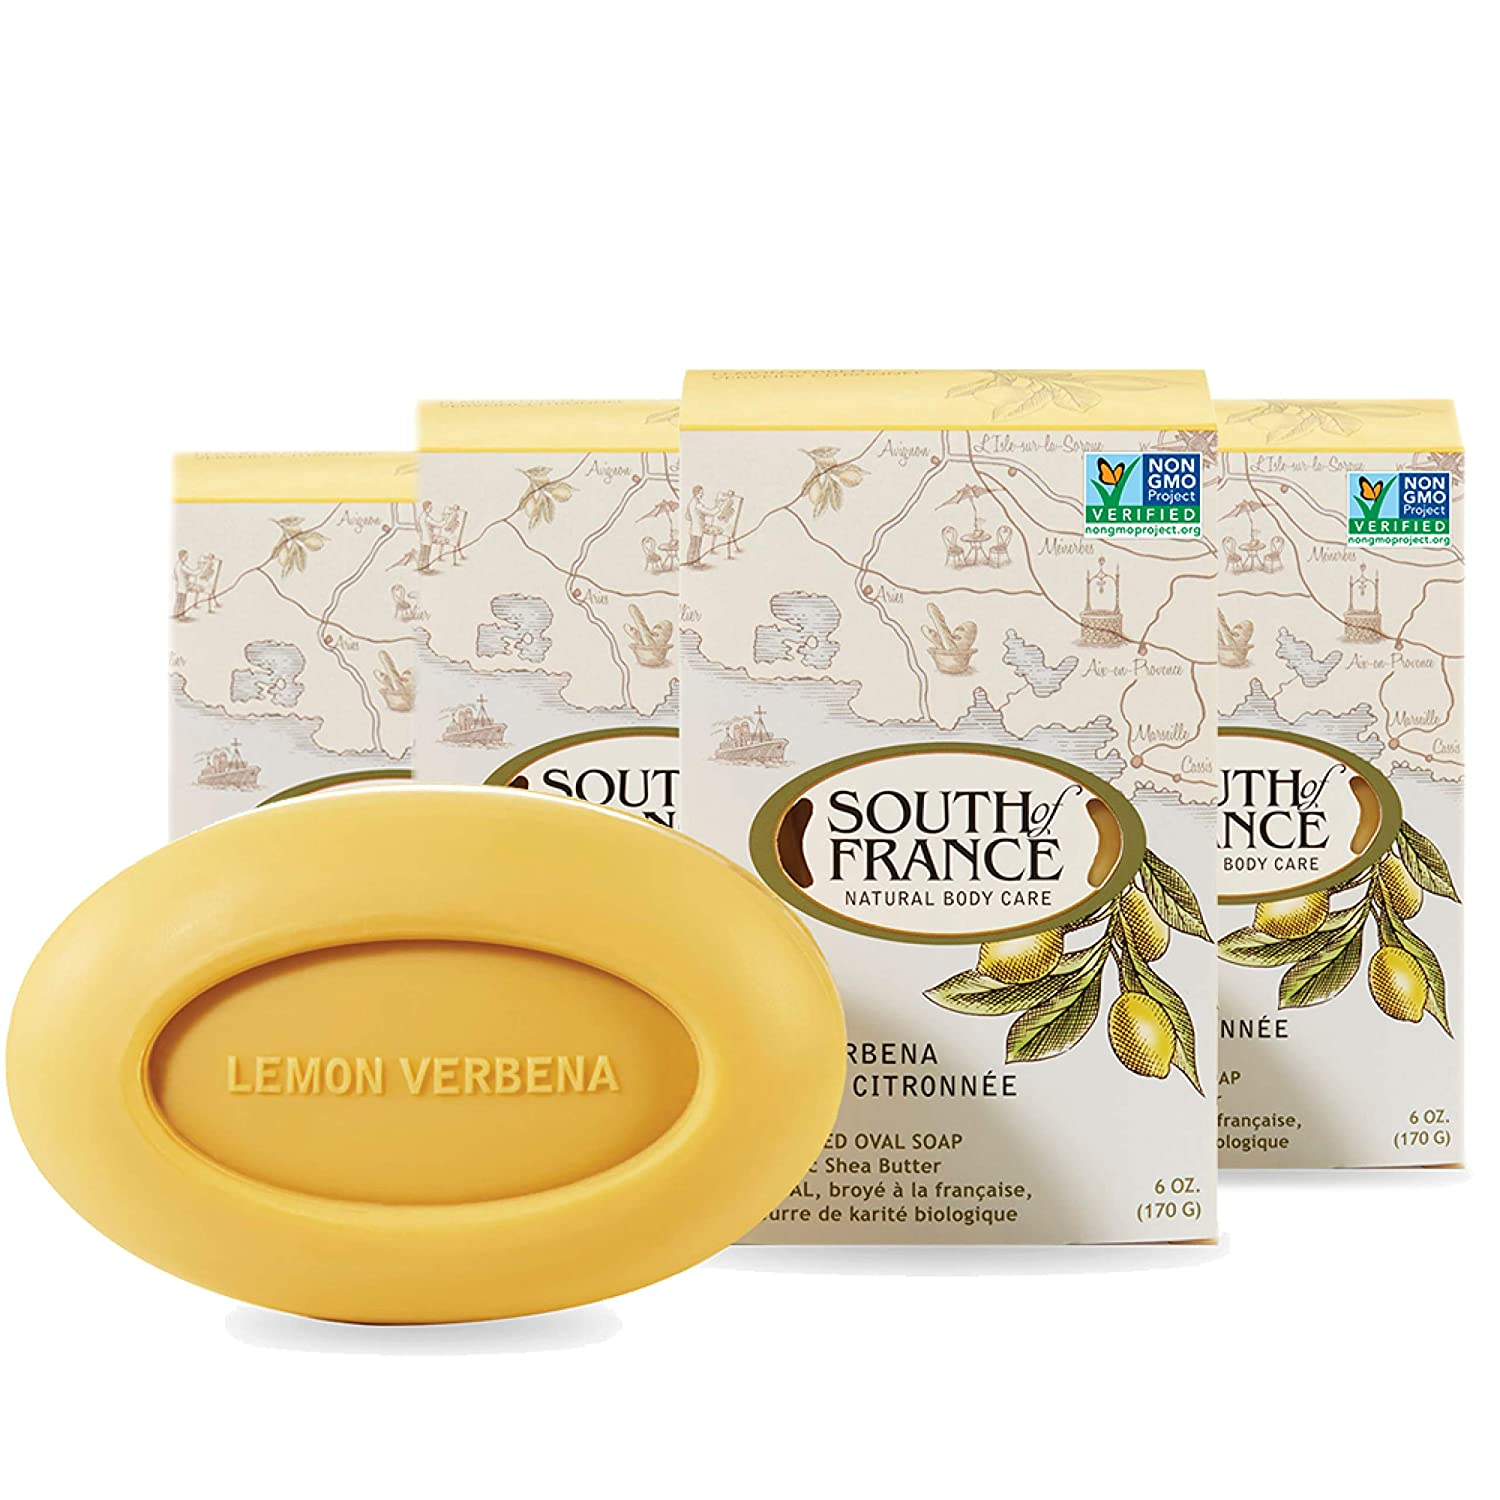 Lemon Verbena Natural Bar Soap by South of France Natural Body Care | Triple-Milled French Soap with Organic Shea Butter + Essential Oils | Vegan, Non-GMO Body Soap | 6 oz Bar – 4 Pack